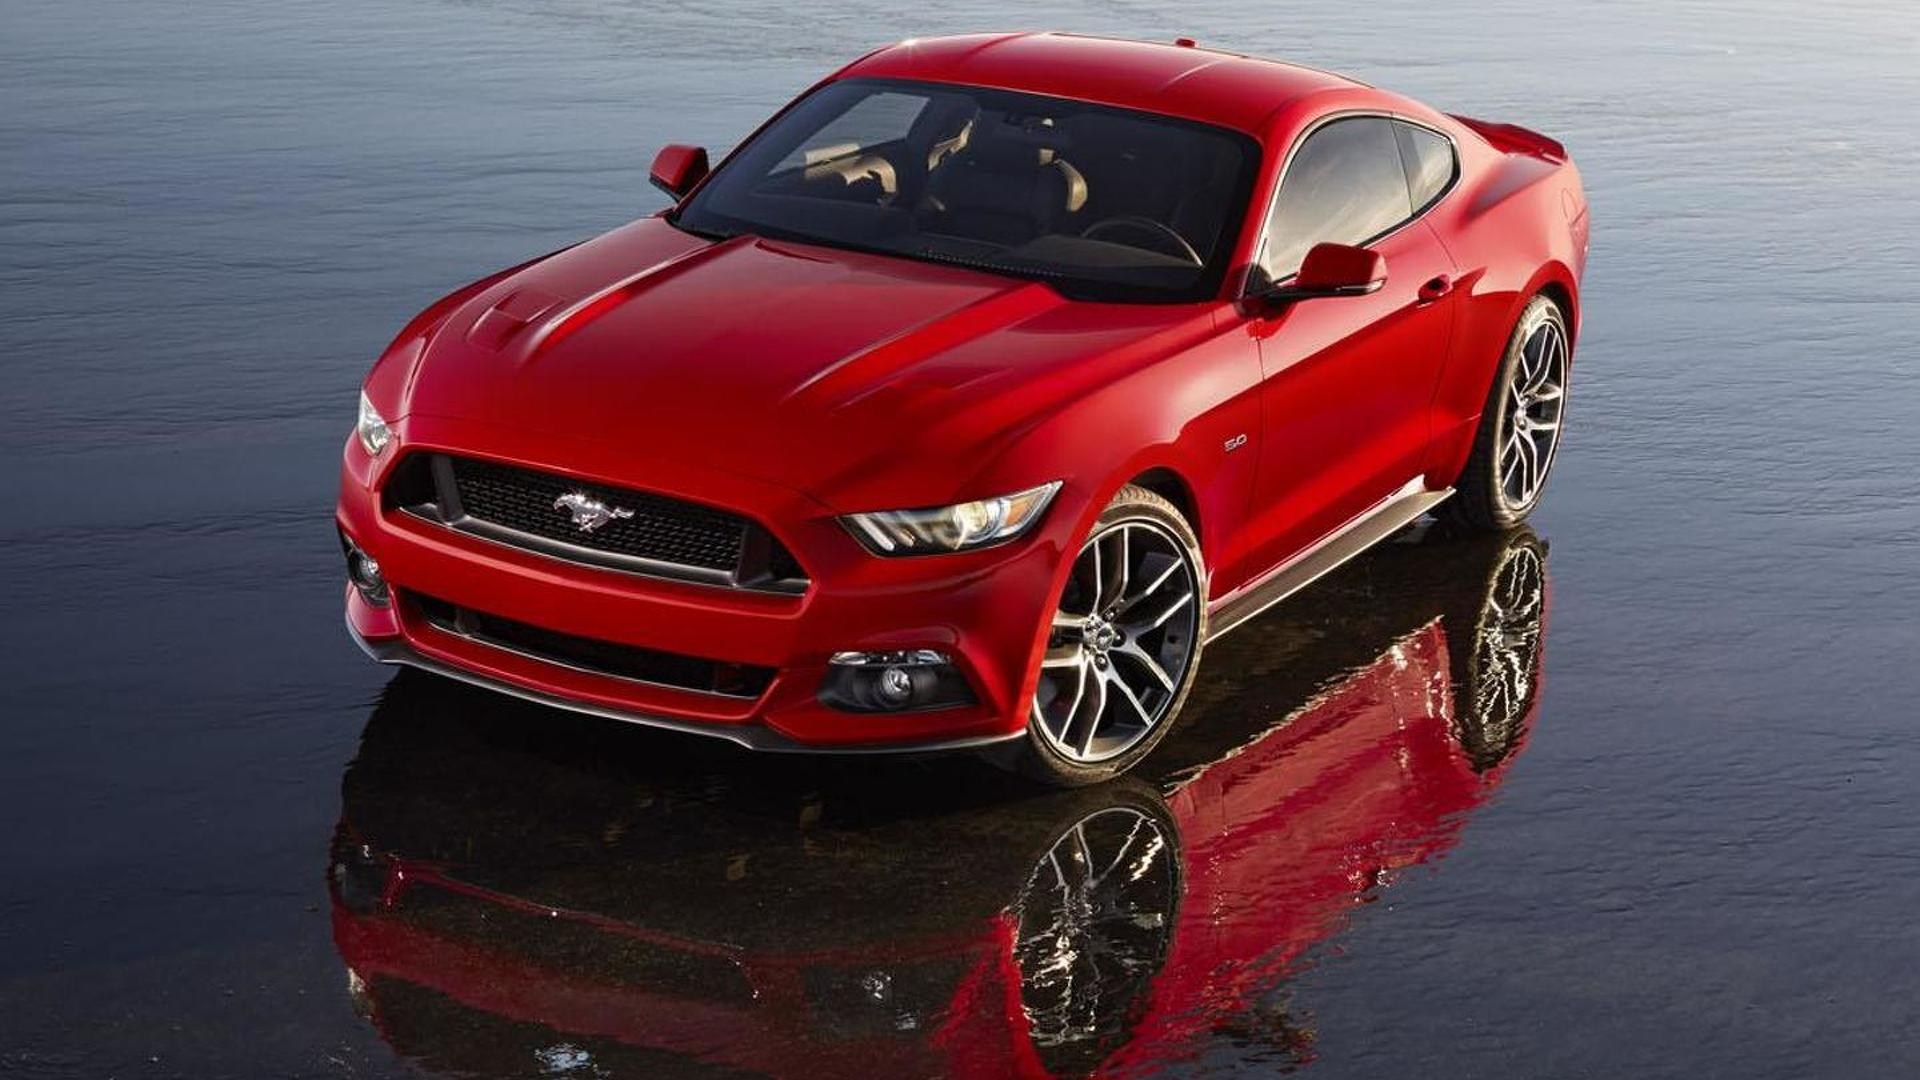 2015 Ford Mustang order guide leaks out early, reveals equipment & options